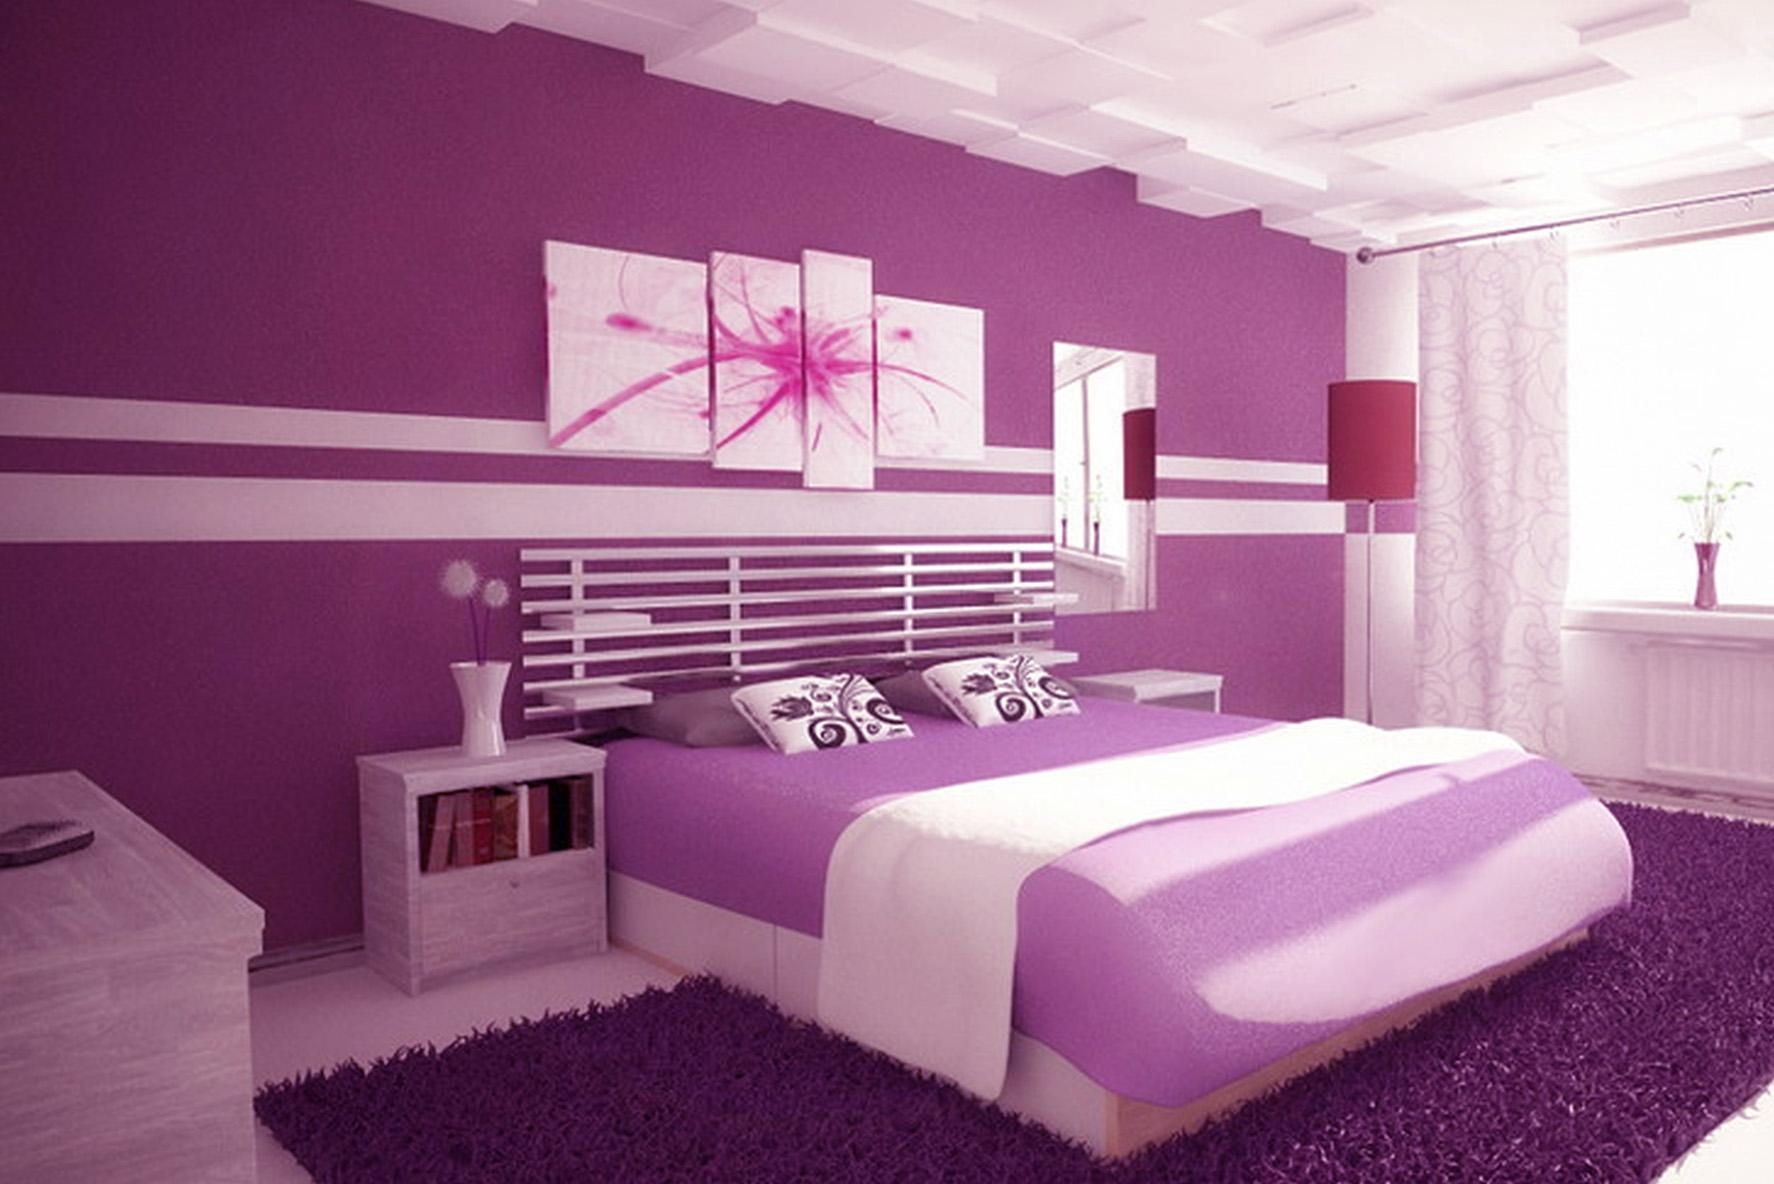 Bedroom : Light Purple Wall Paint Purple Colour Bedroom What Color For Purple Wall Art For Bedroom (Image 1 of 20)